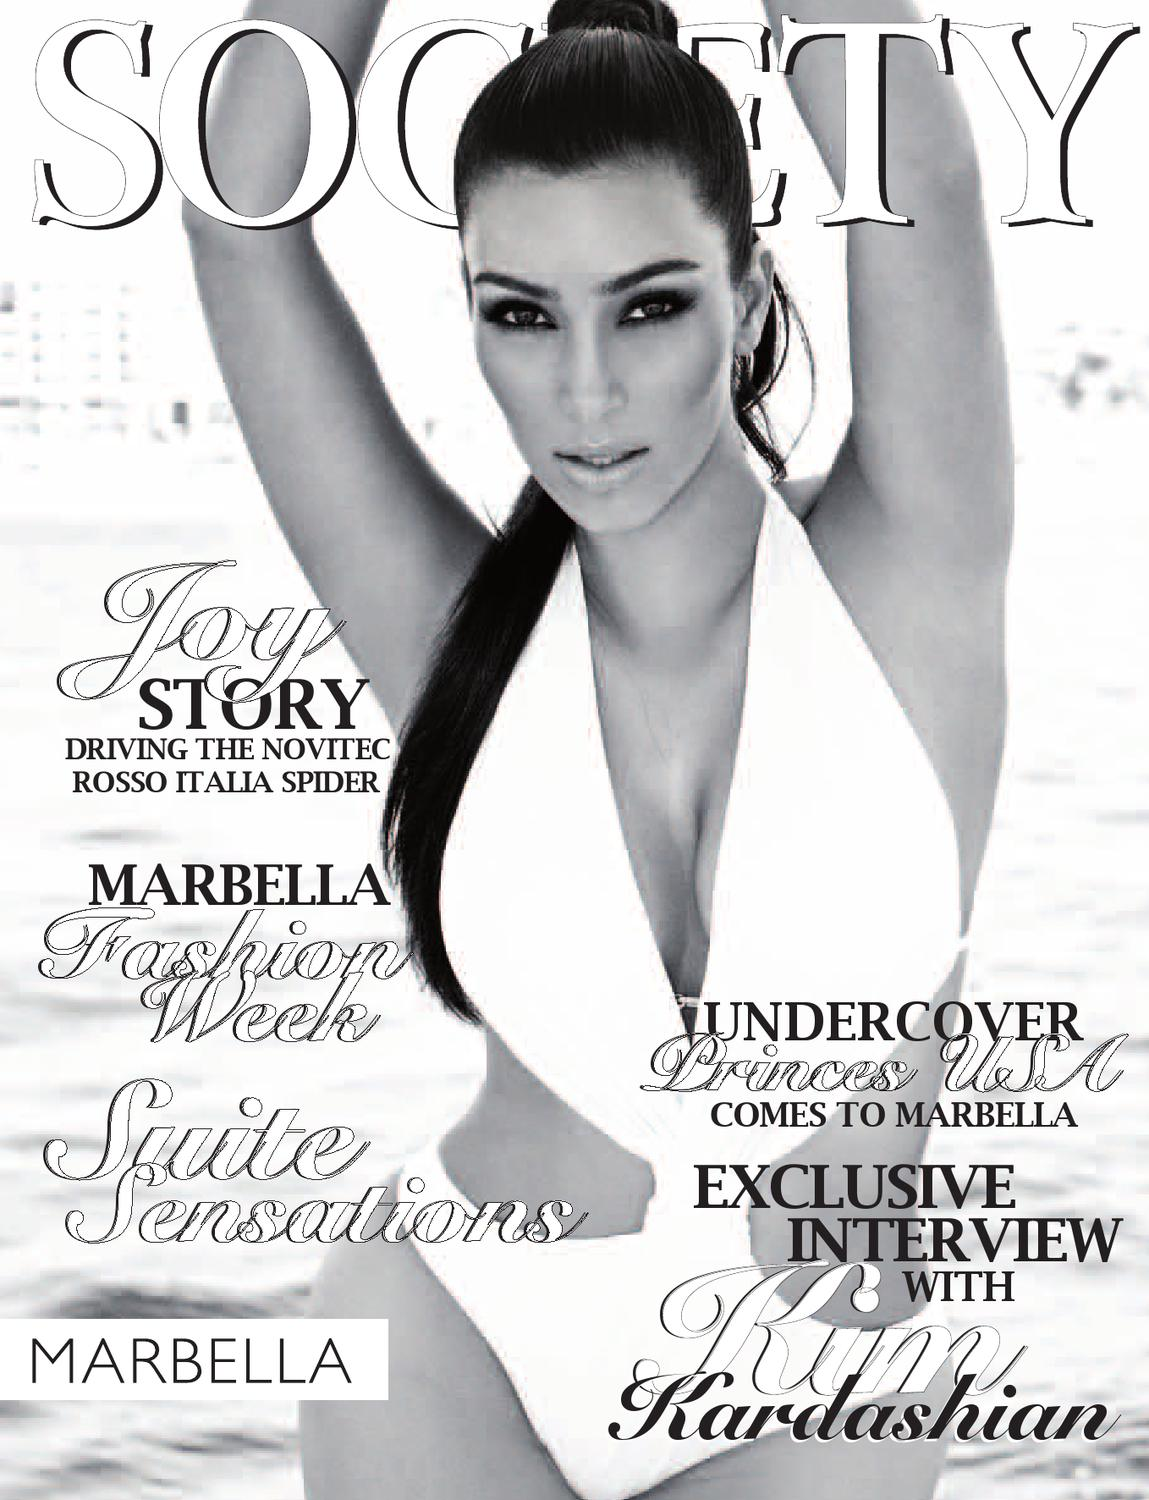 Society Marbella August 2012 by Icon Publishing - issuu